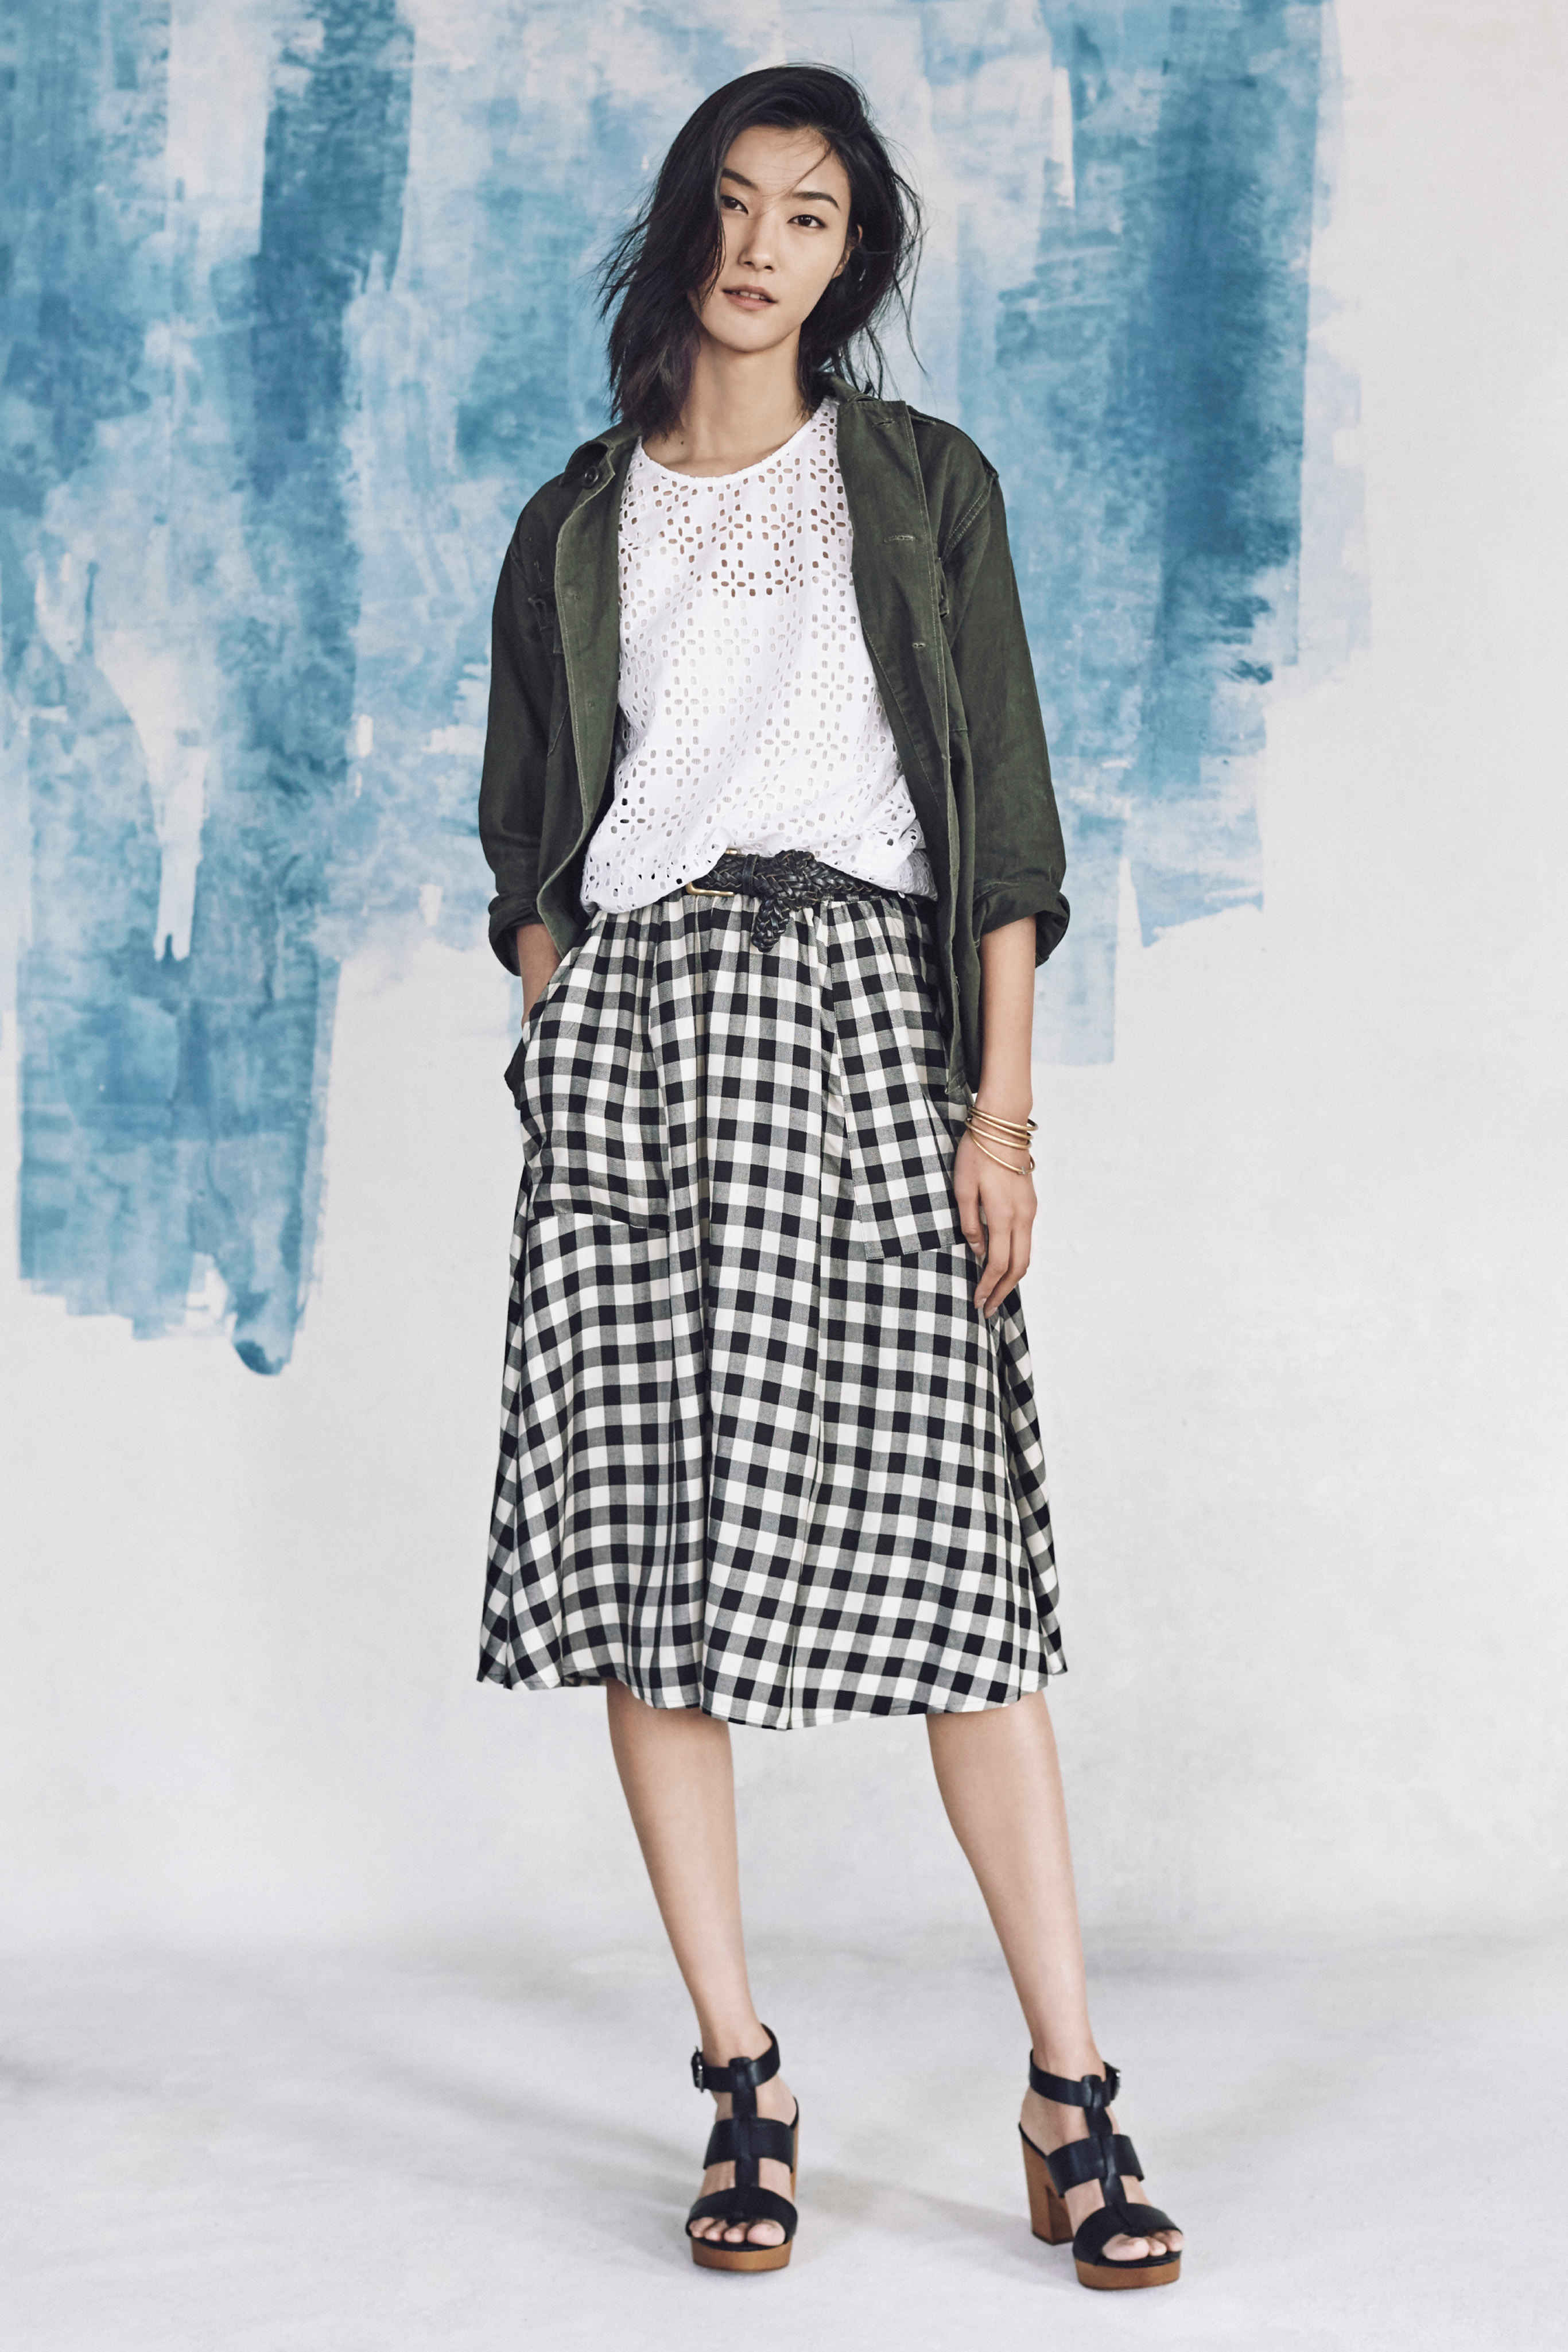 Madewell just released their spring 2016 collection, and trust me, you are going to be clamoring for every single piece. It's just so wearable. - Madewell Spring 2016 Lookbook - Gingham